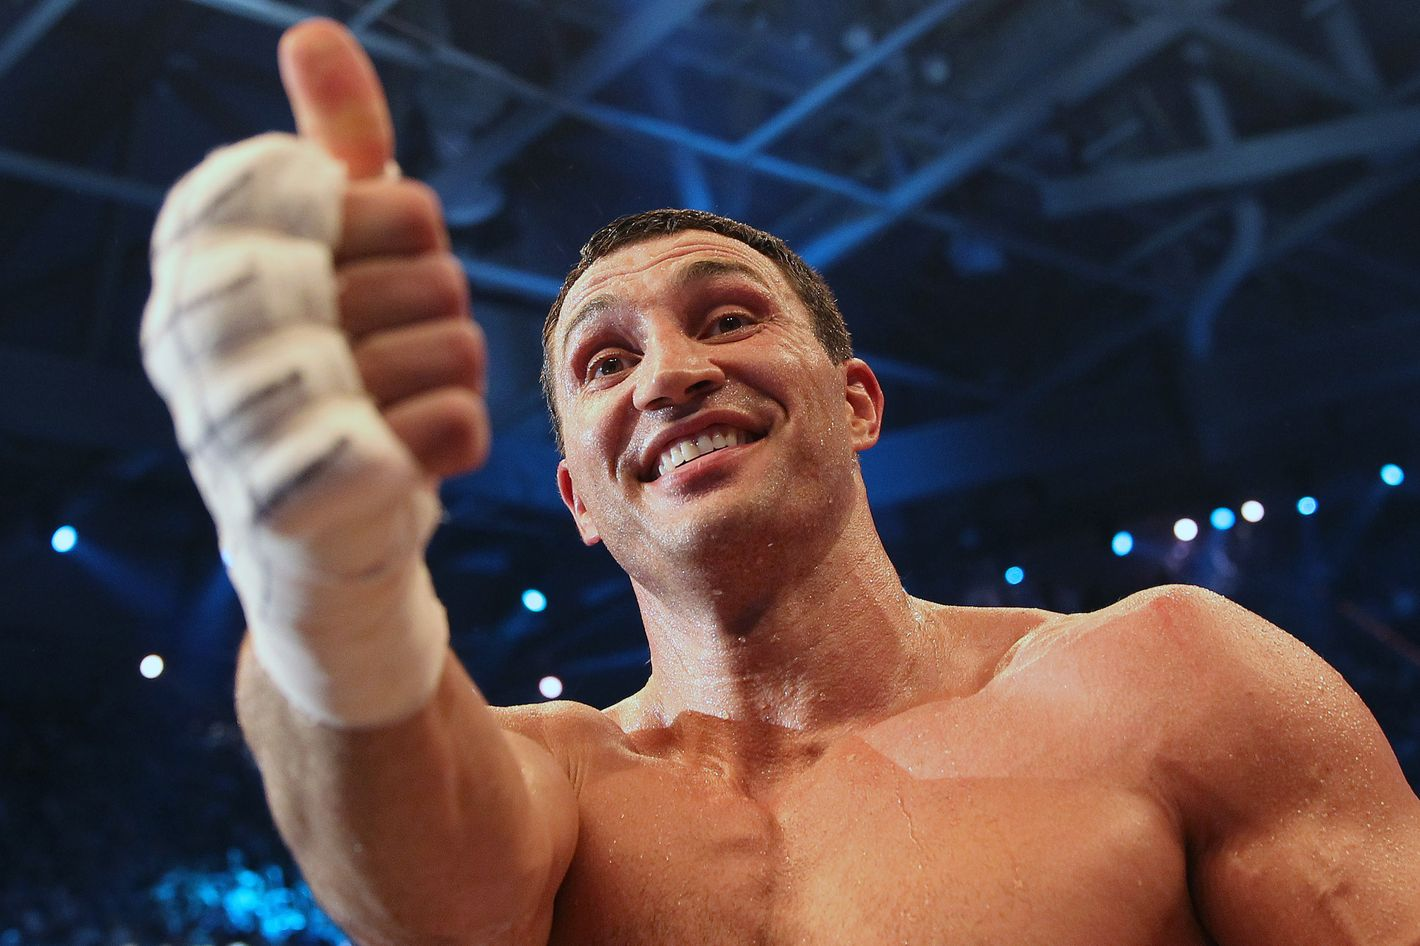 Ukrainian Heavyweight Champion Wladimir Klitschko gestures as he celebrates his win against challenger Italian-born Francesco Pianeta by knockout in round 6 in their IBO, IBF, WBO, WBA title fight in Mannheim, Germany on May 4, 2013.